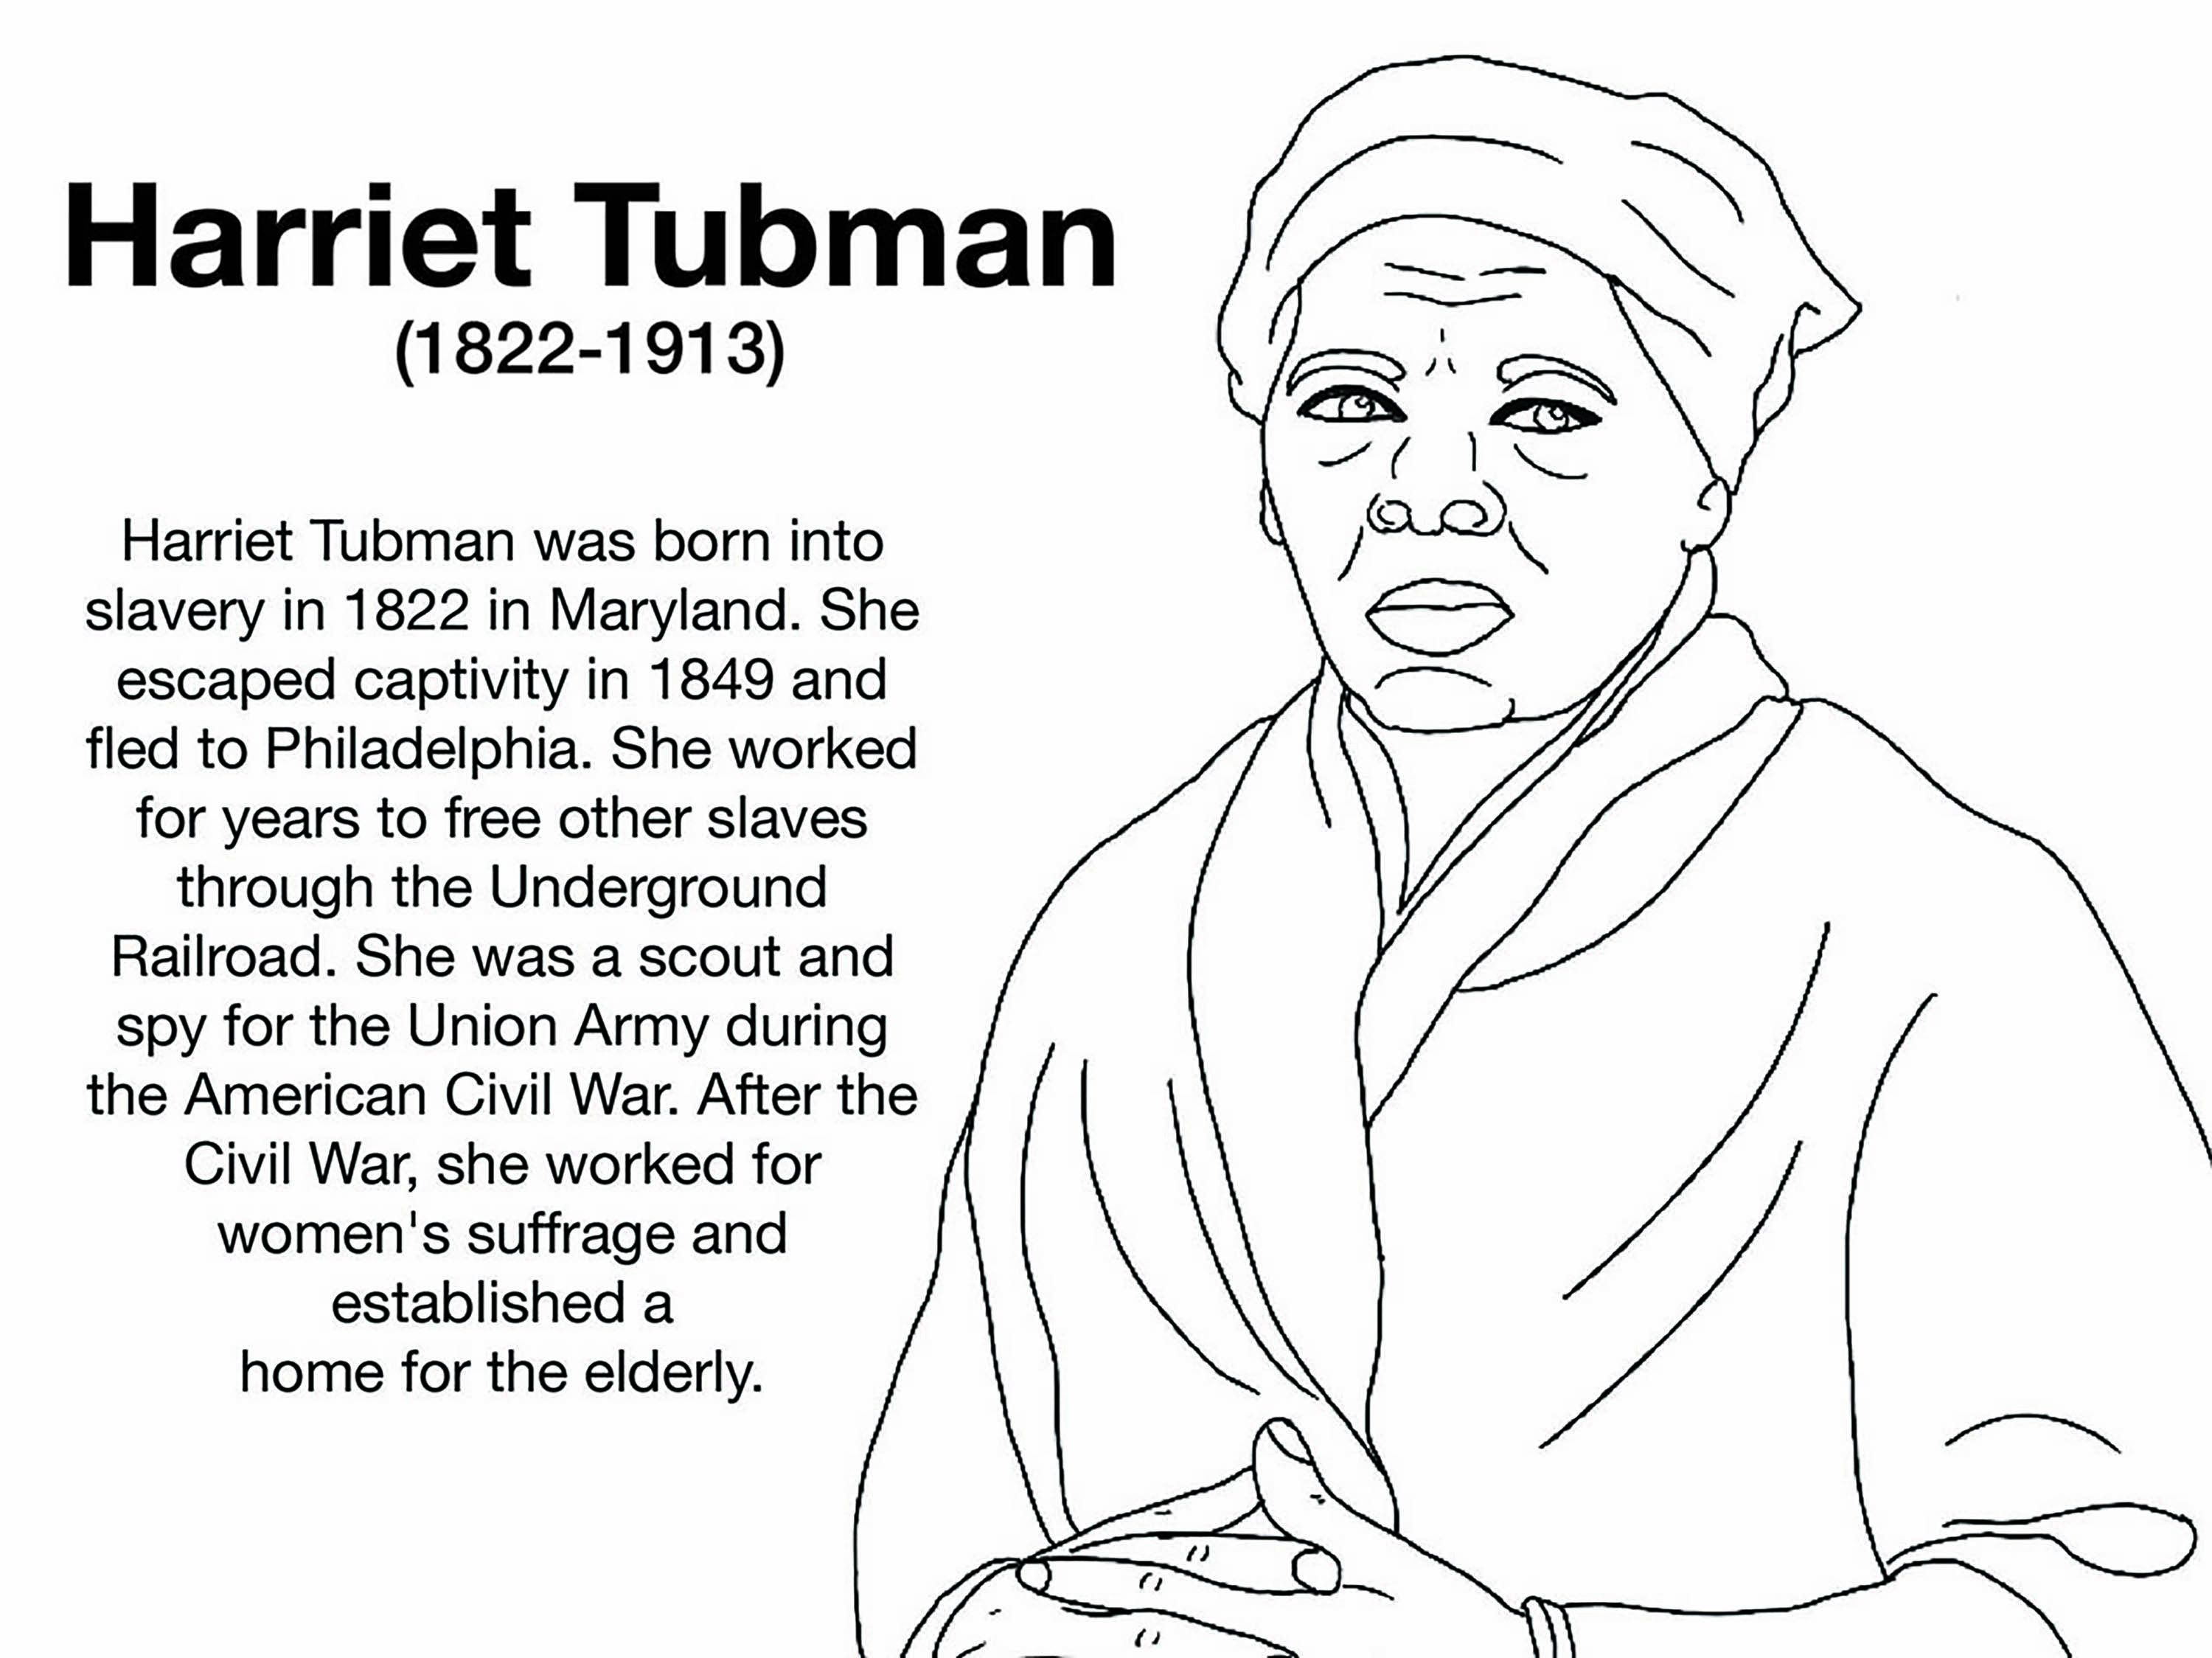 Free Harriet Tubman Coloring Page Coloring Pages Inspirational Coloring Pages Elsa Coloring Pages